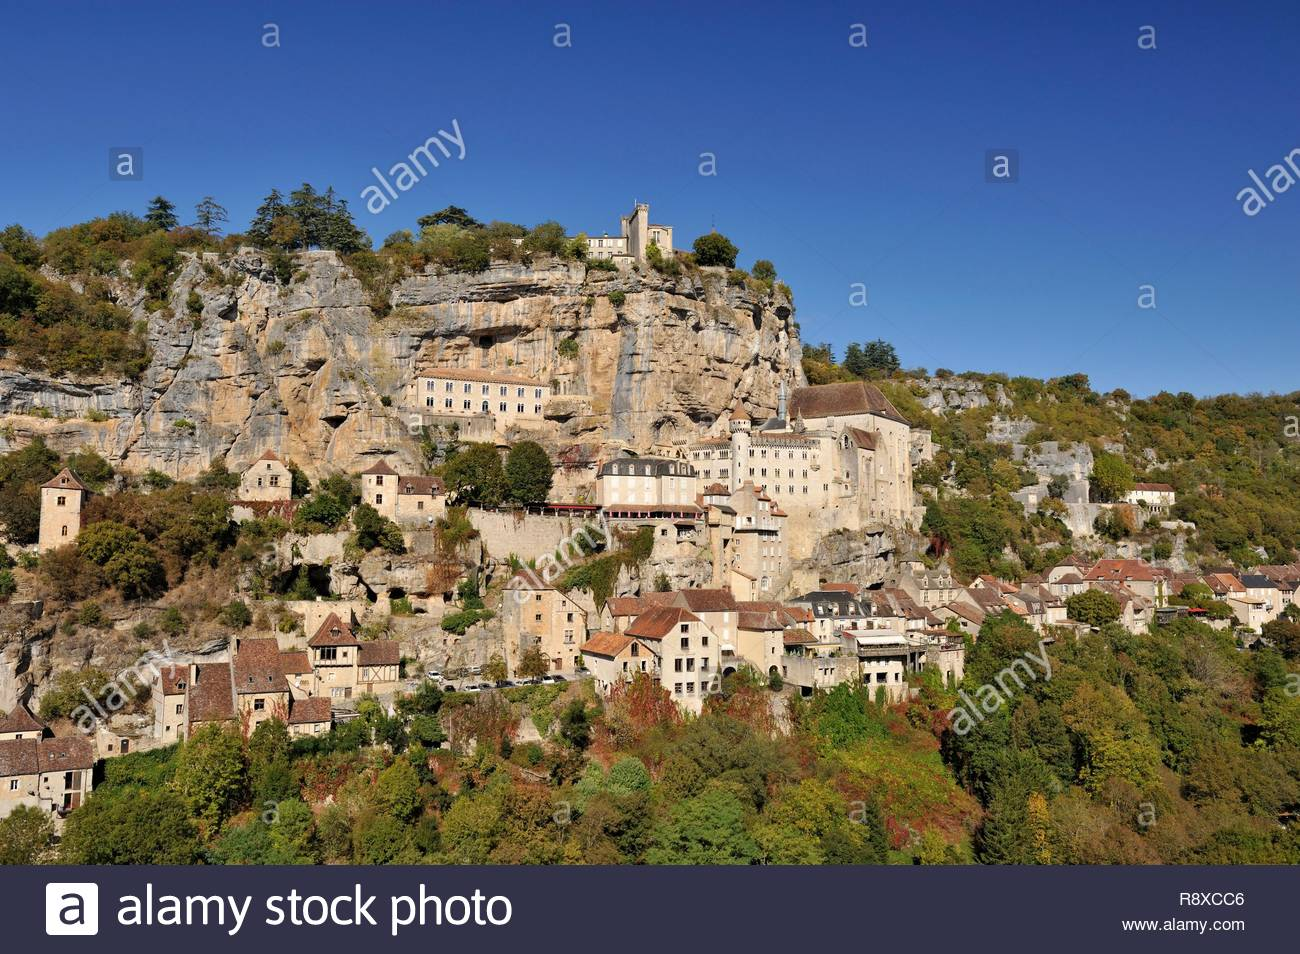 France, Lot, Haut Quercy, Rocamadour, medieval religious city with its sanctuaries overlooking the Canyon of Alzouet and step of the road to Santiago de Compostela - Stock Image